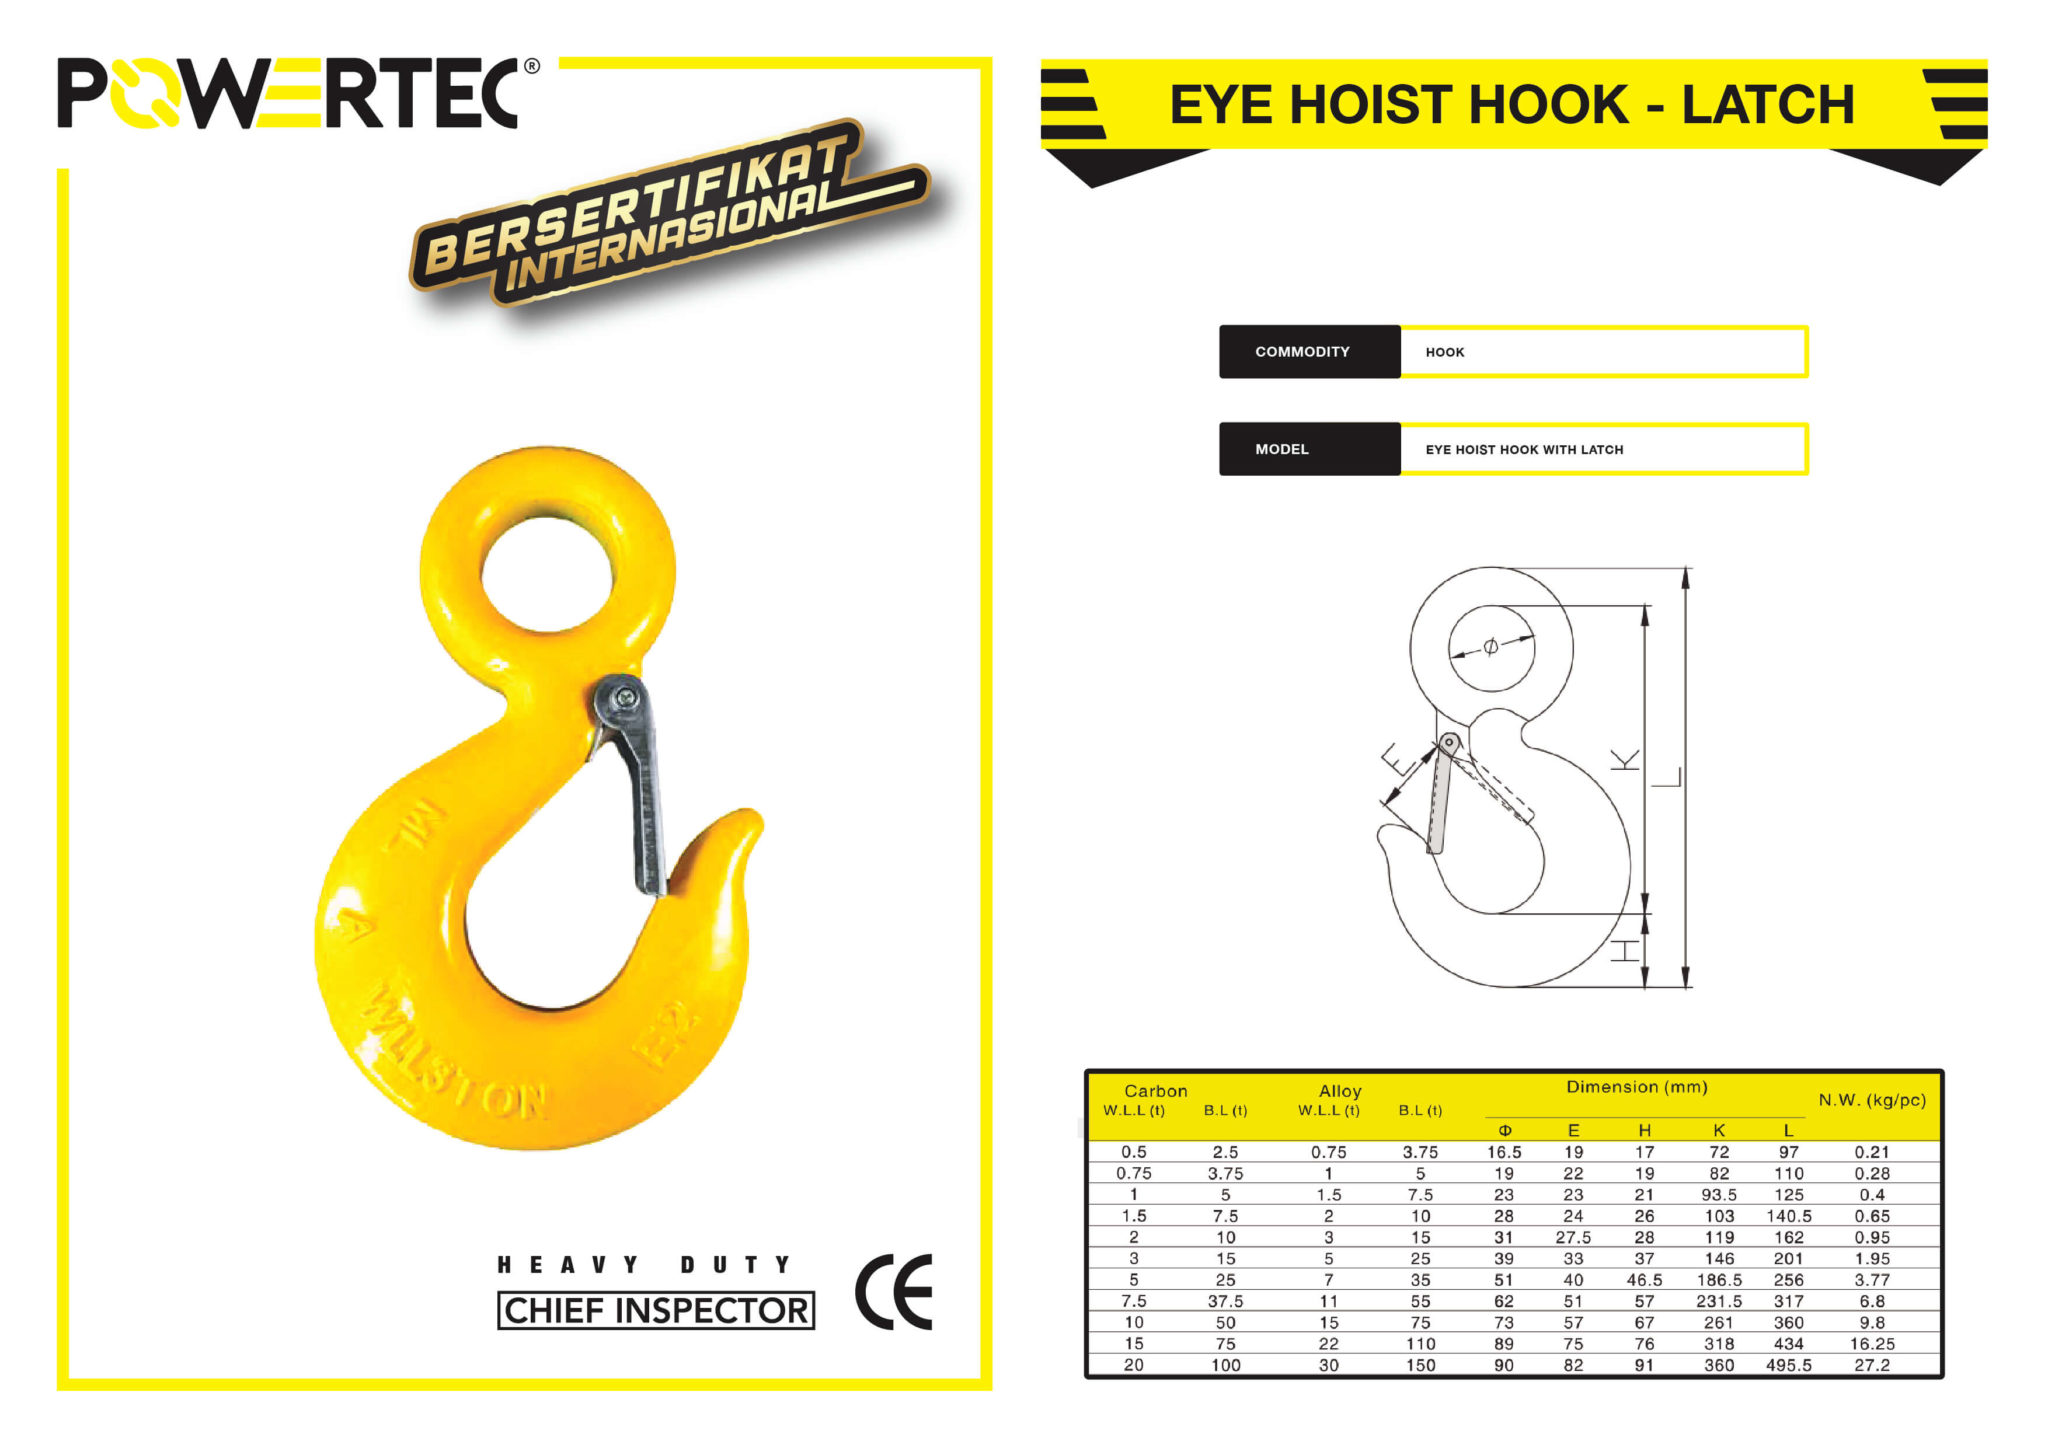 POWERTEC EYE HOIST HOOK WITH LATCH BROCHURE